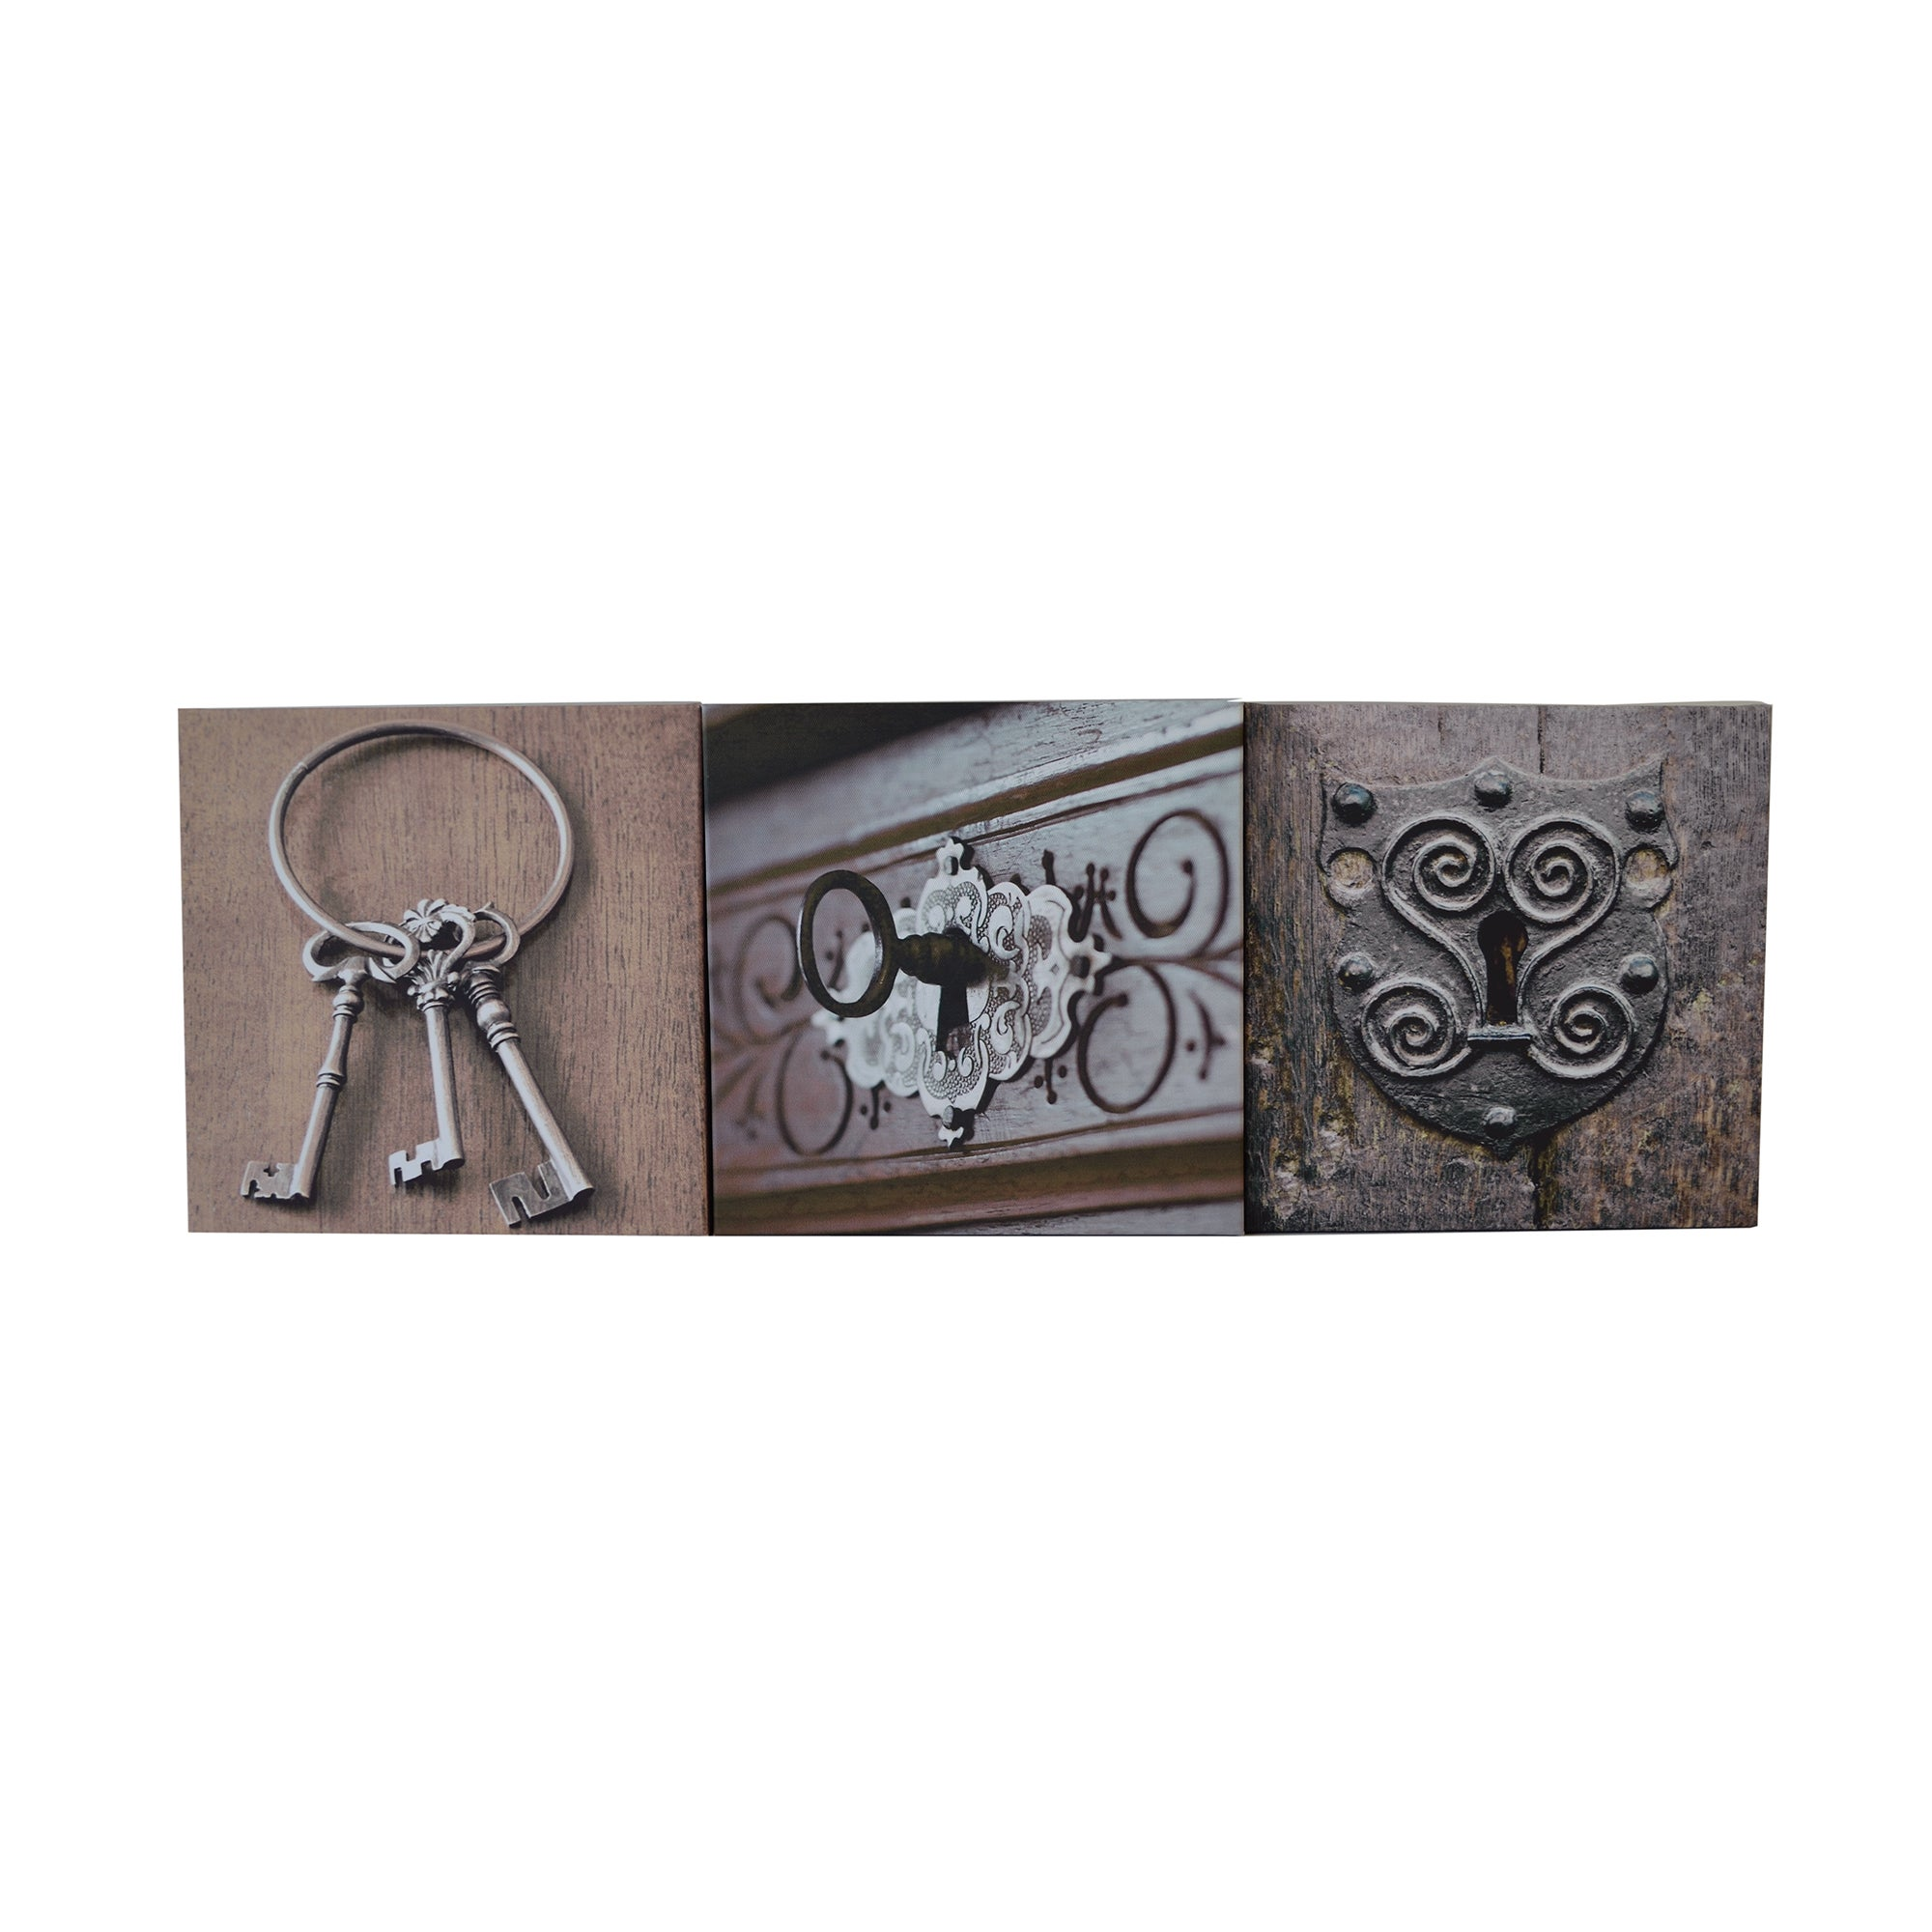 Set of Three Keys Printed Canvases